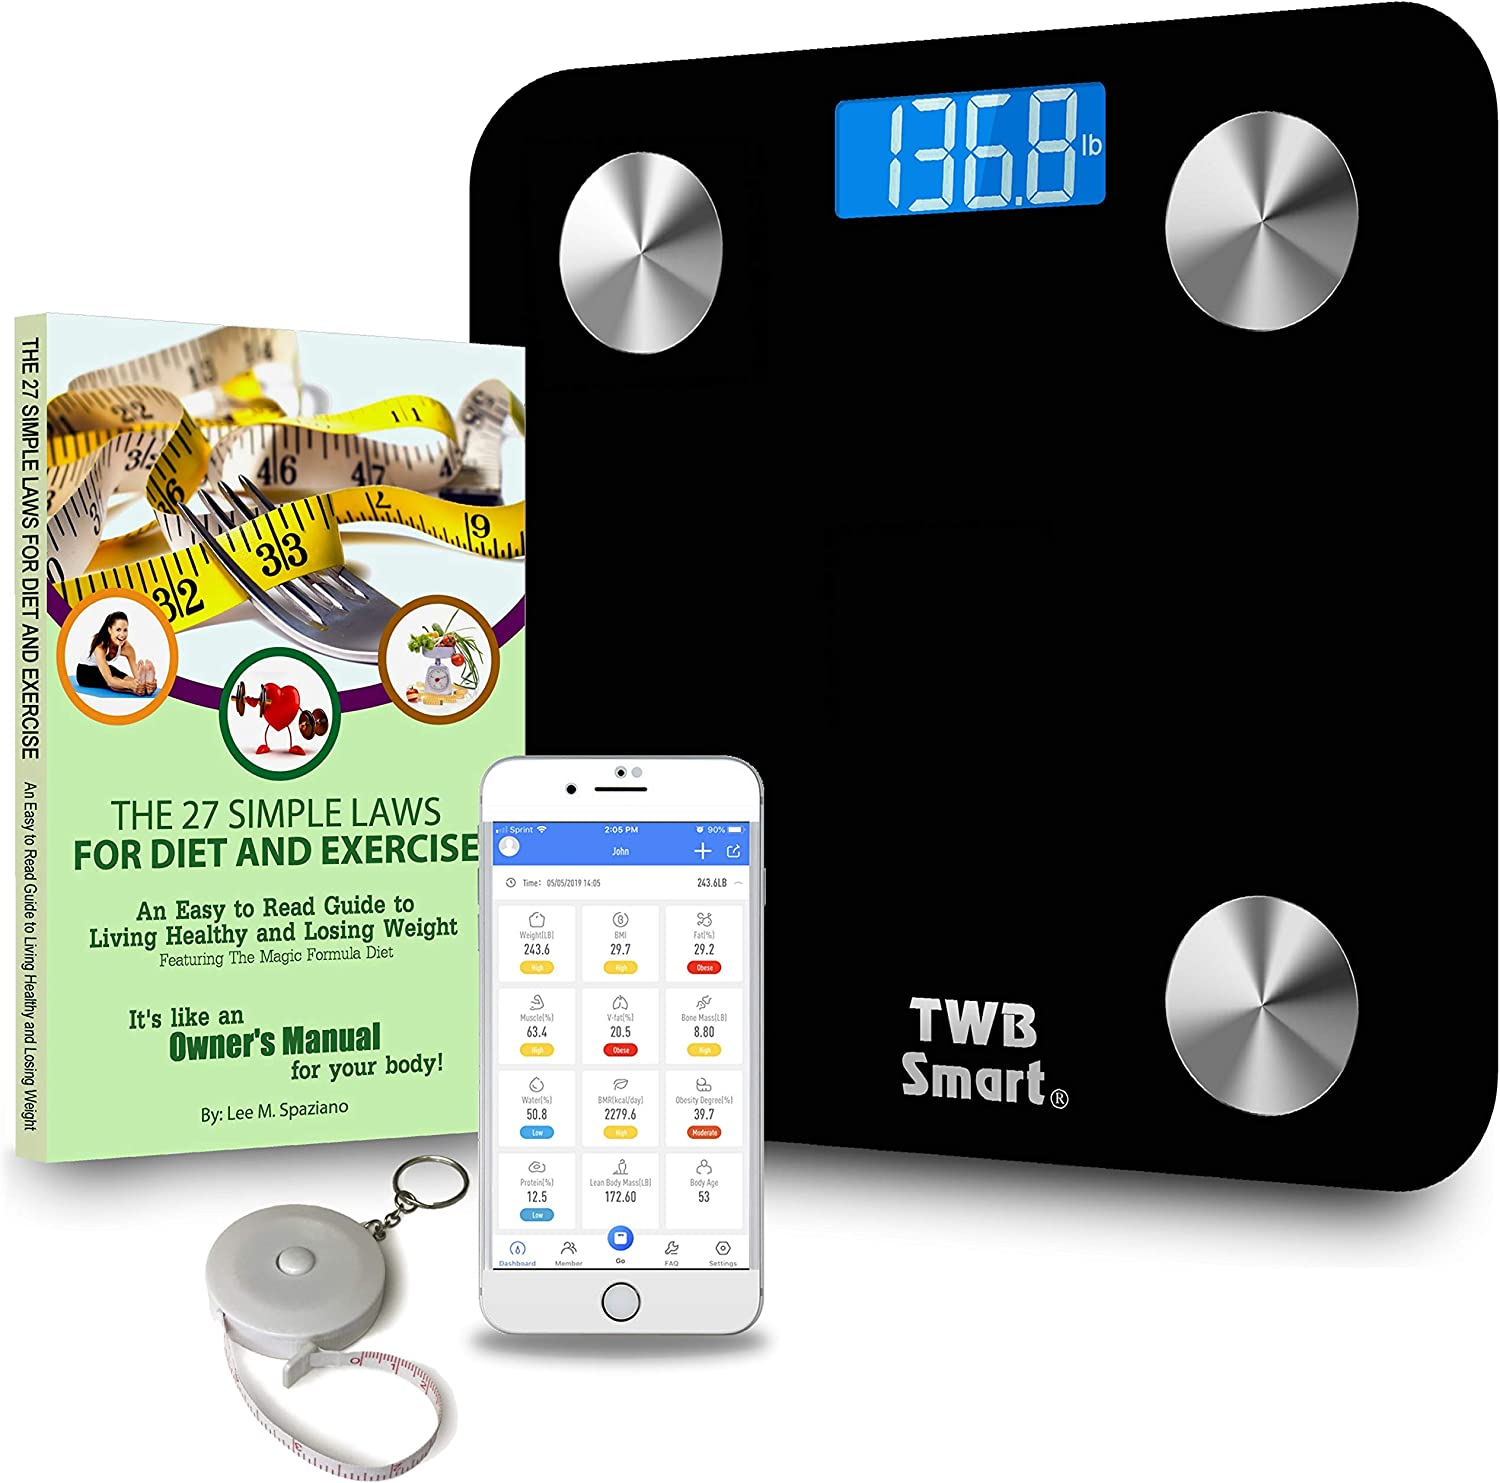 TWB Smart Bluetooth Scale Deluxe Gift Set – Large Digital Display Tracks BMI, Body Fat, Muscle More. Includes Free App, Paperback Book 27 Simple Laws for Diet and Exercise, and Bonus Tape Measure